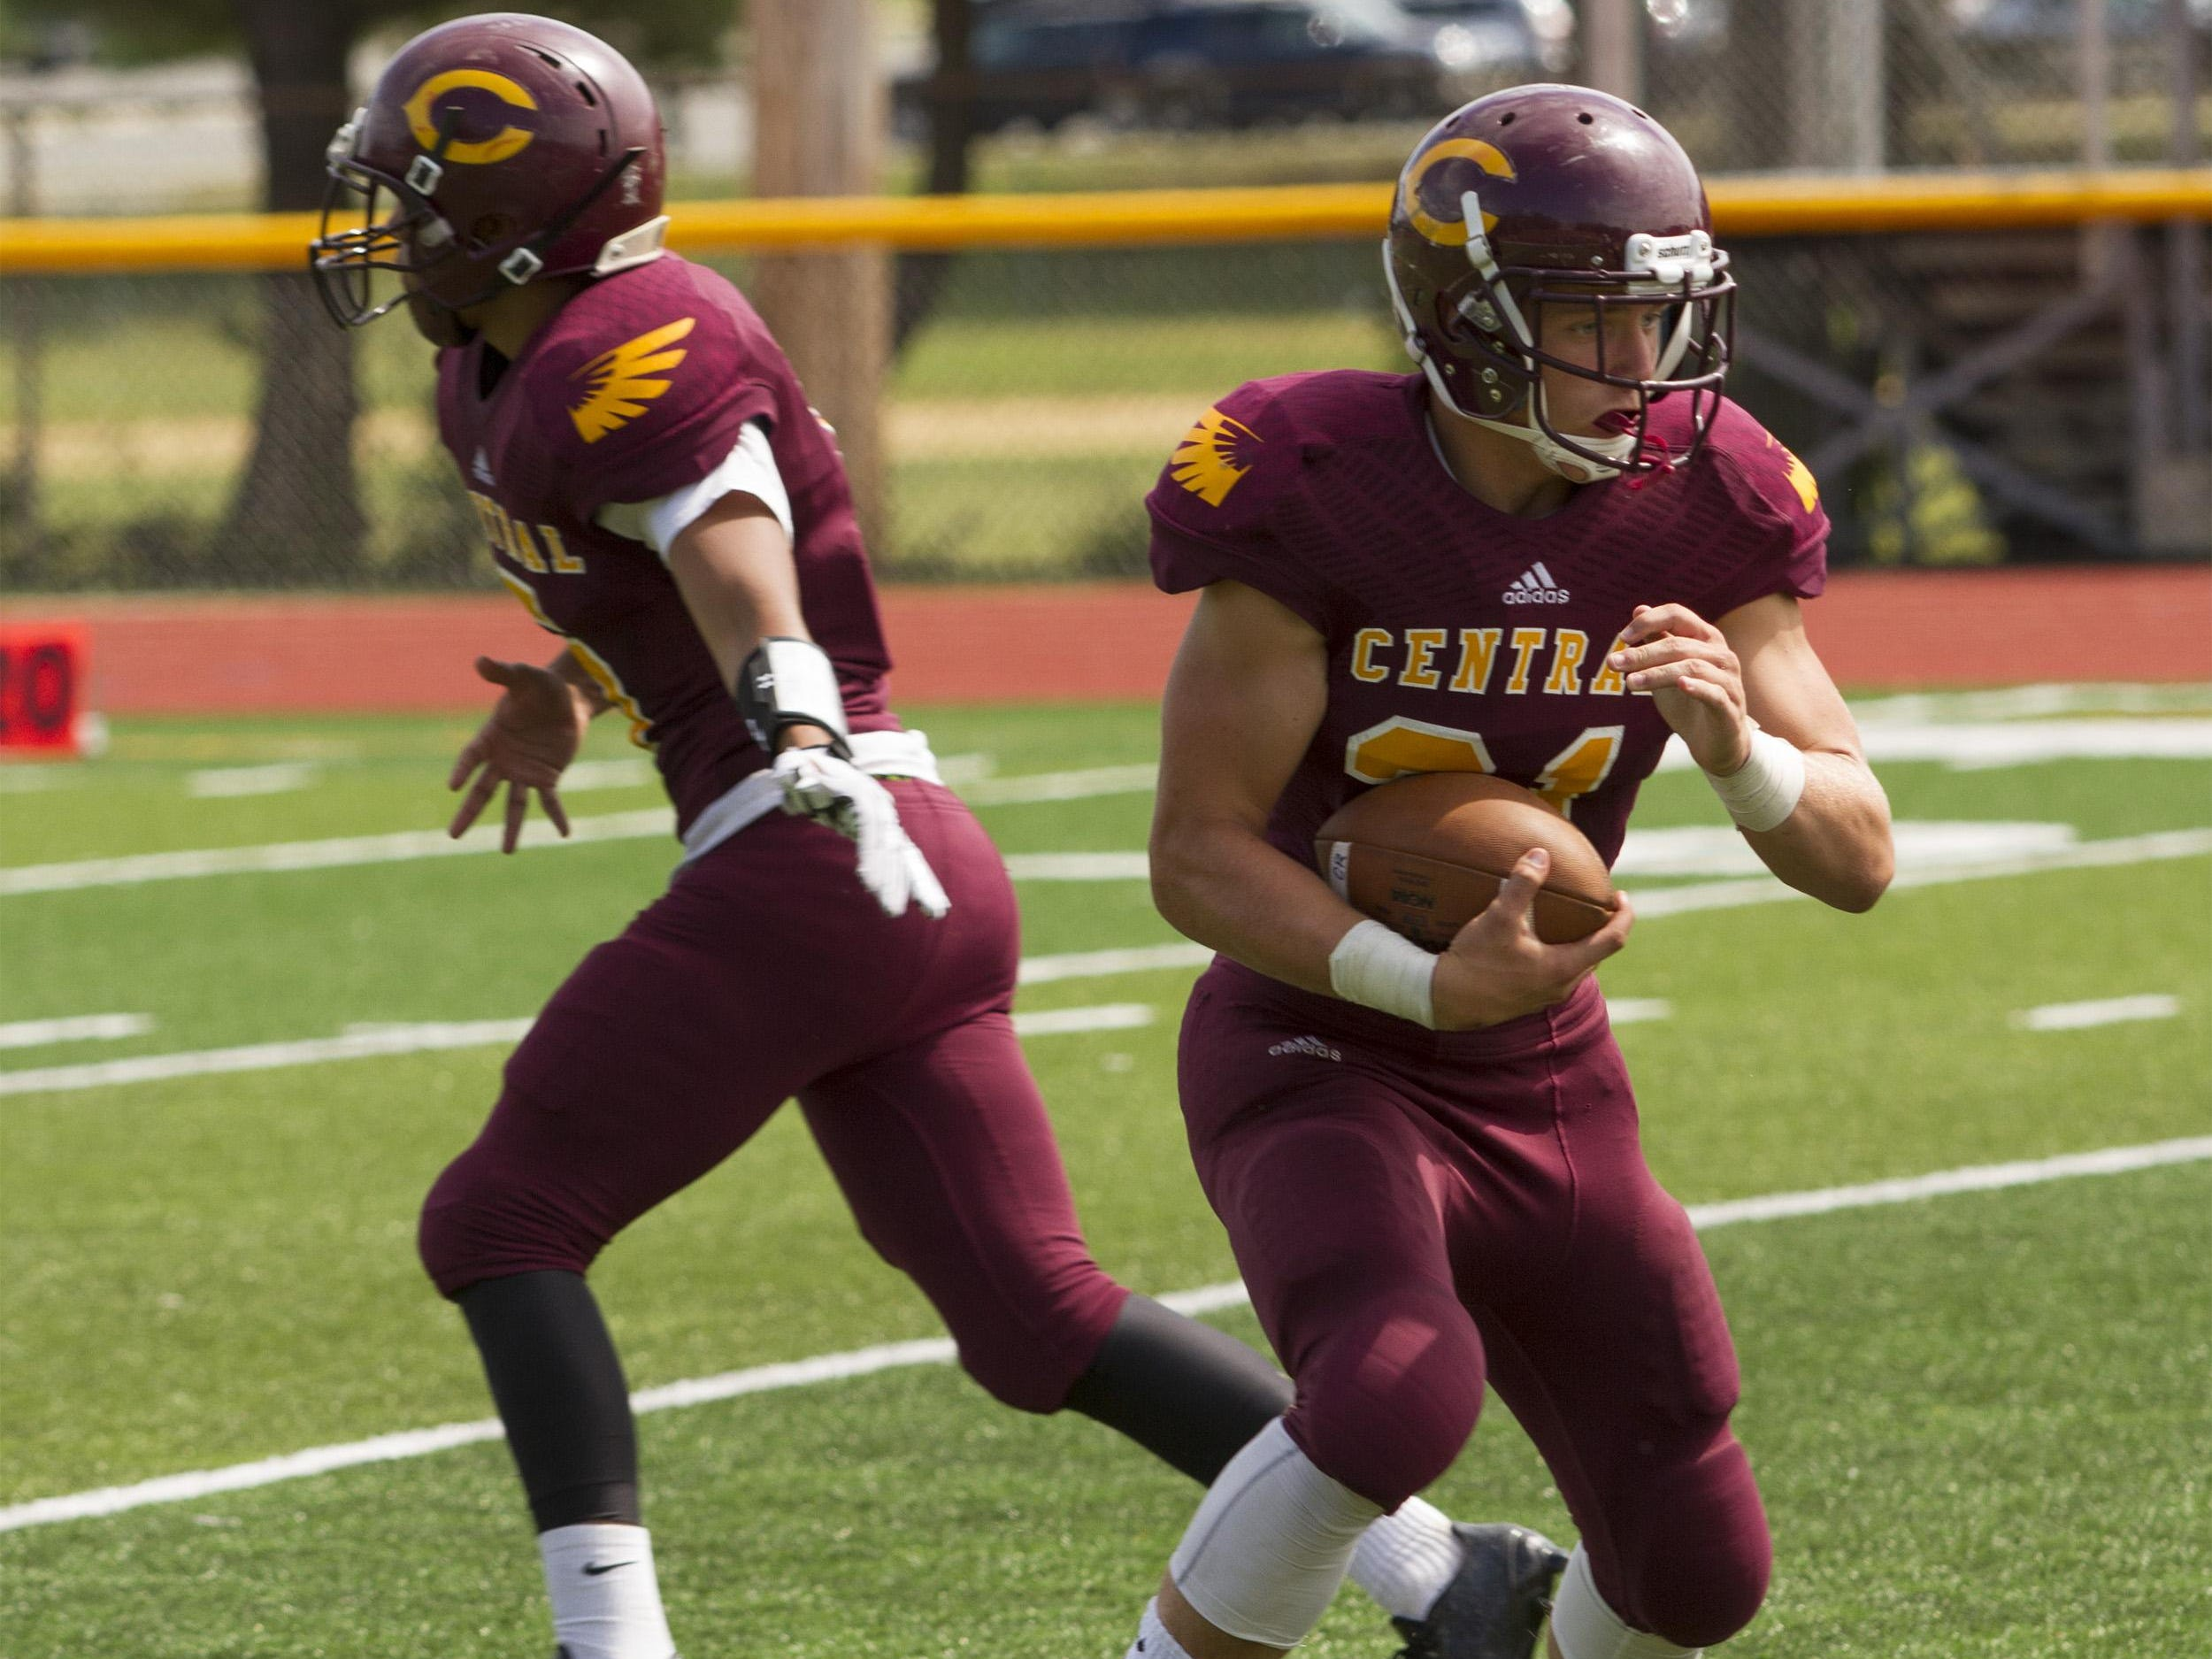 Central running back Mike Bickford takes a handoff from quarterback Mike Miserendino.